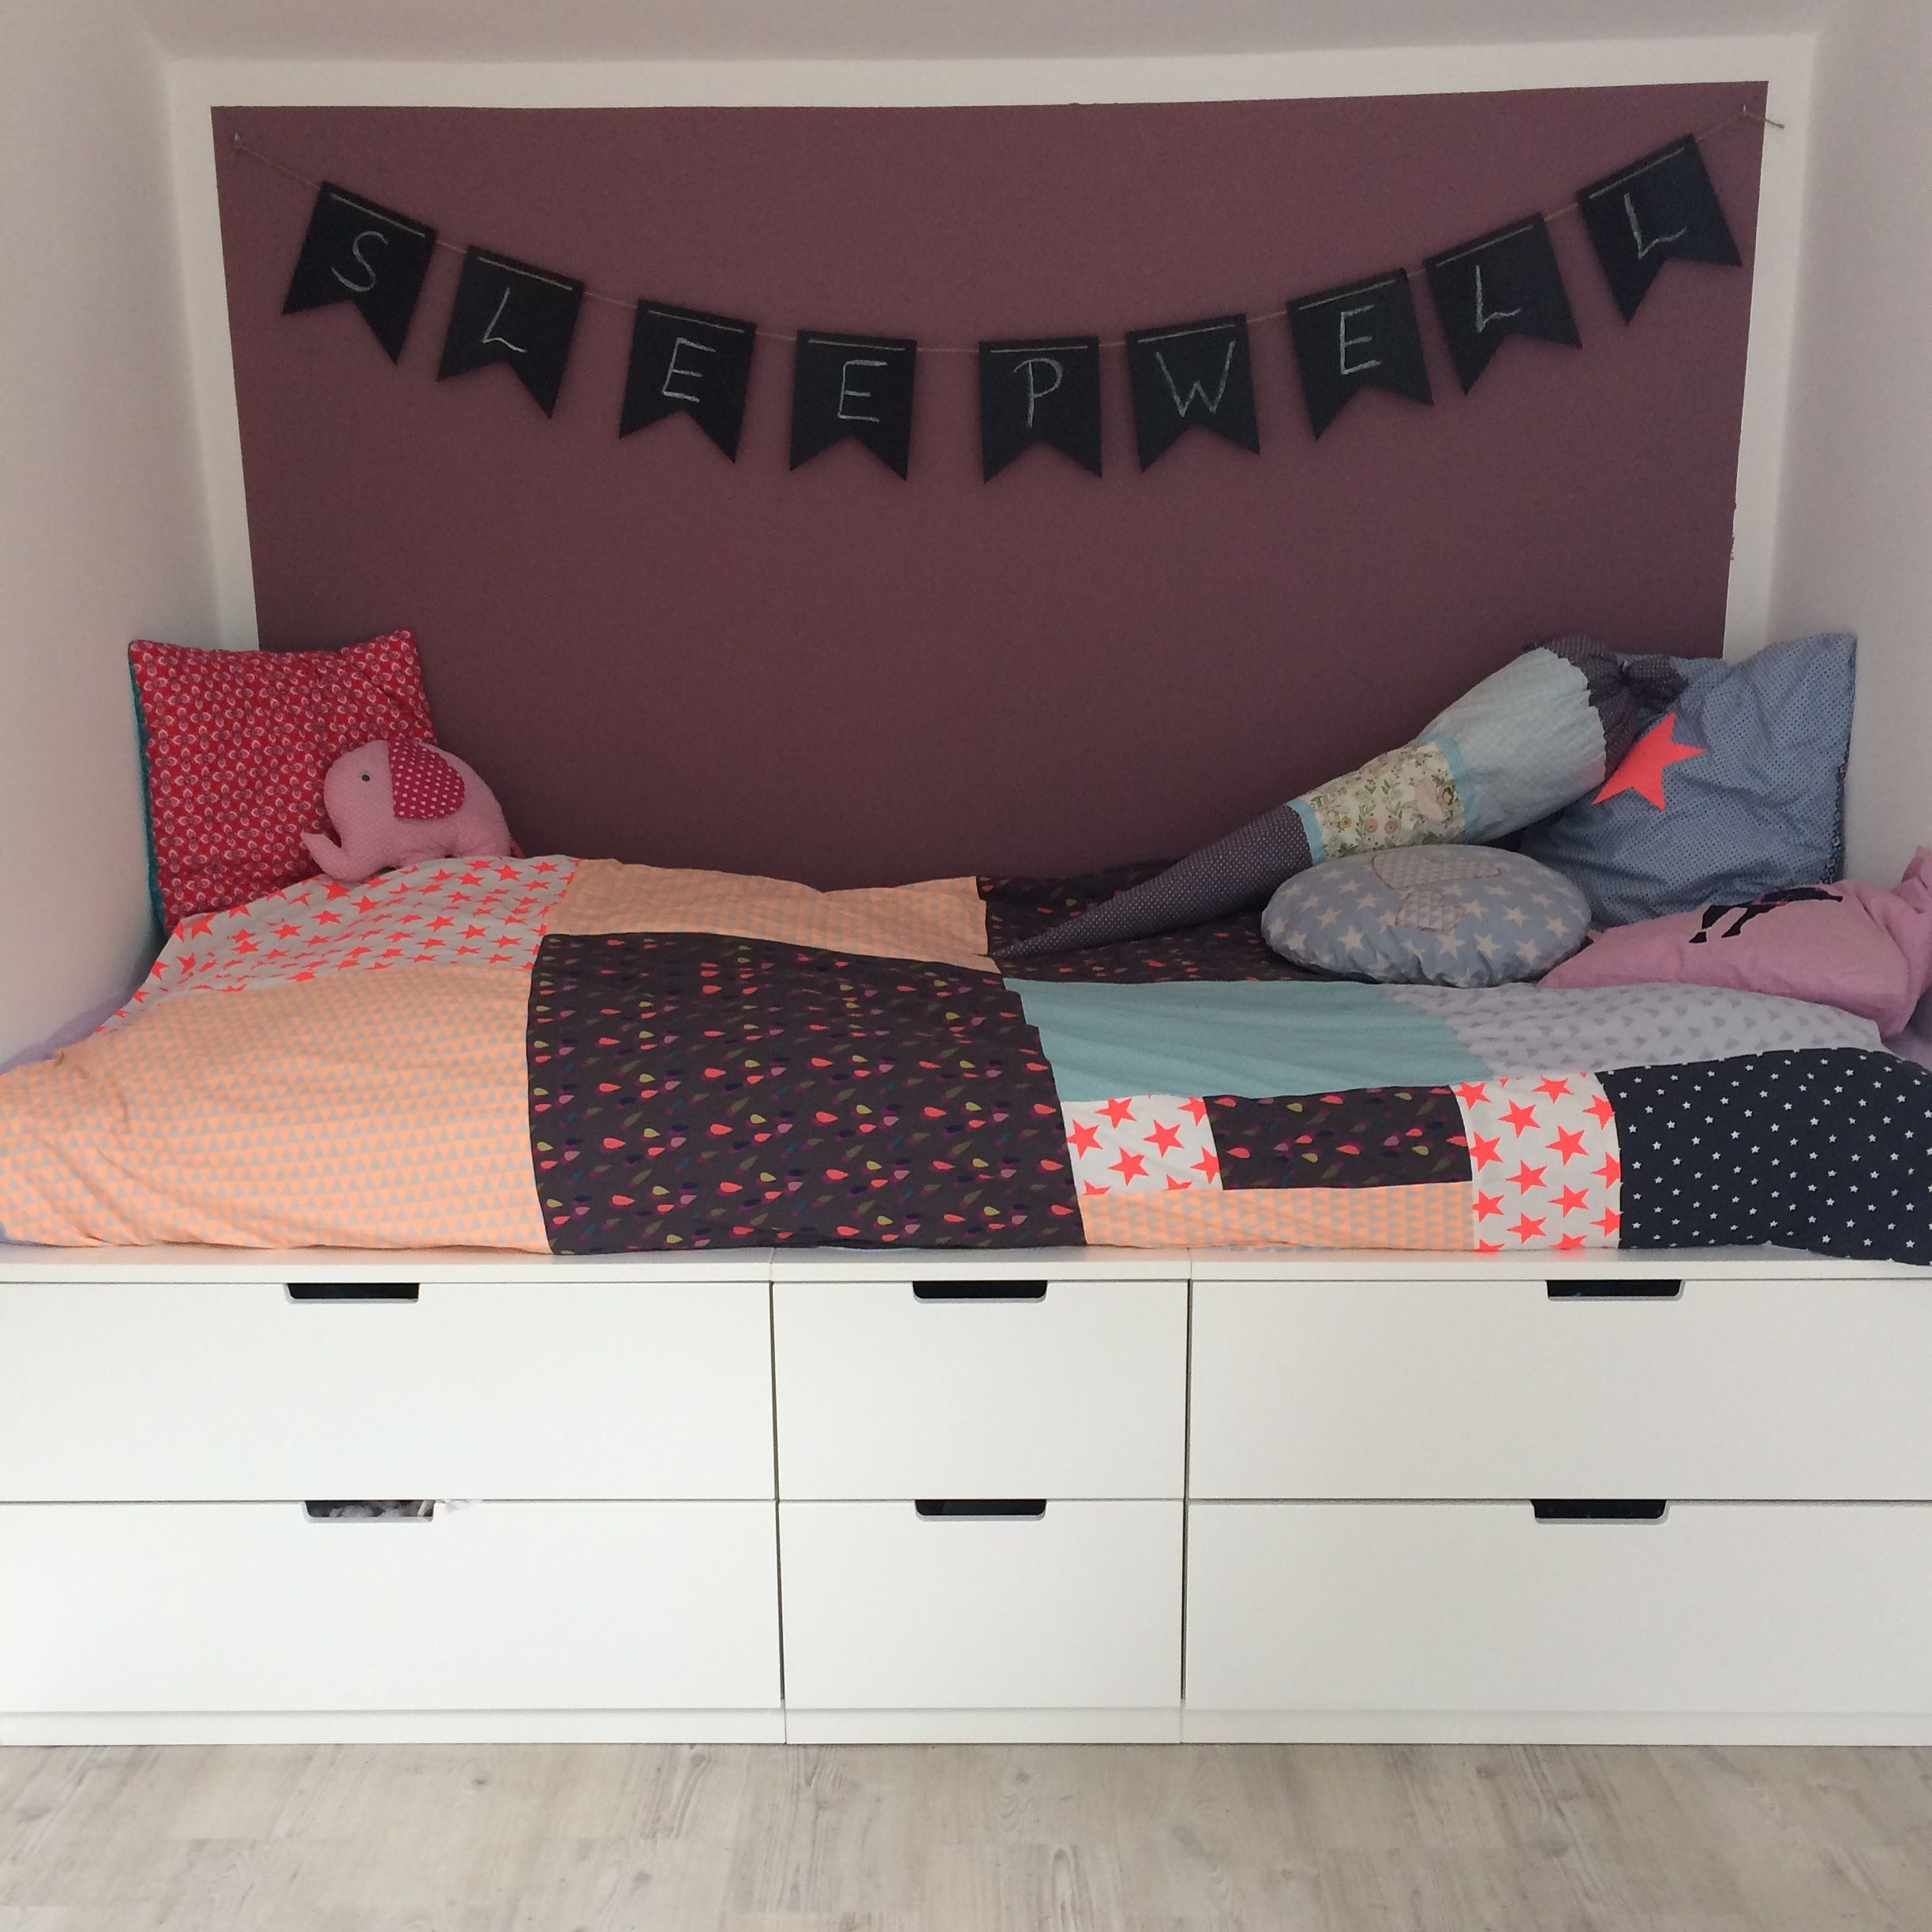 bett auf nordli kommoden ikeahacks kinderzimmer pinterest kinderzimmer jugendzimmer. Black Bedroom Furniture Sets. Home Design Ideas